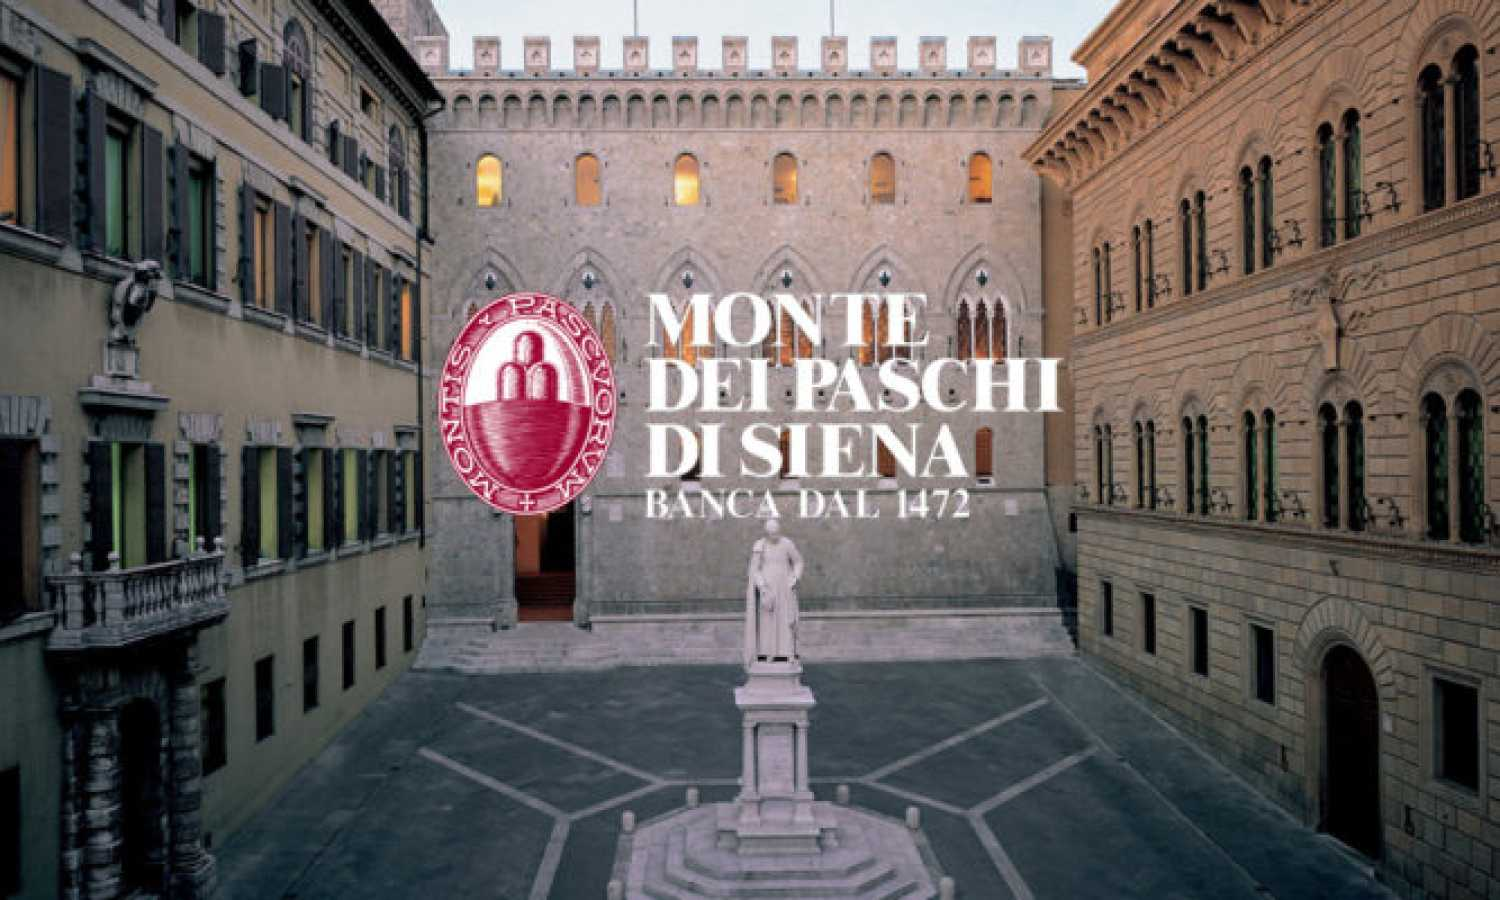 Monte dei Paschi - one of the biggest Italian banks - suffered a cyber attack